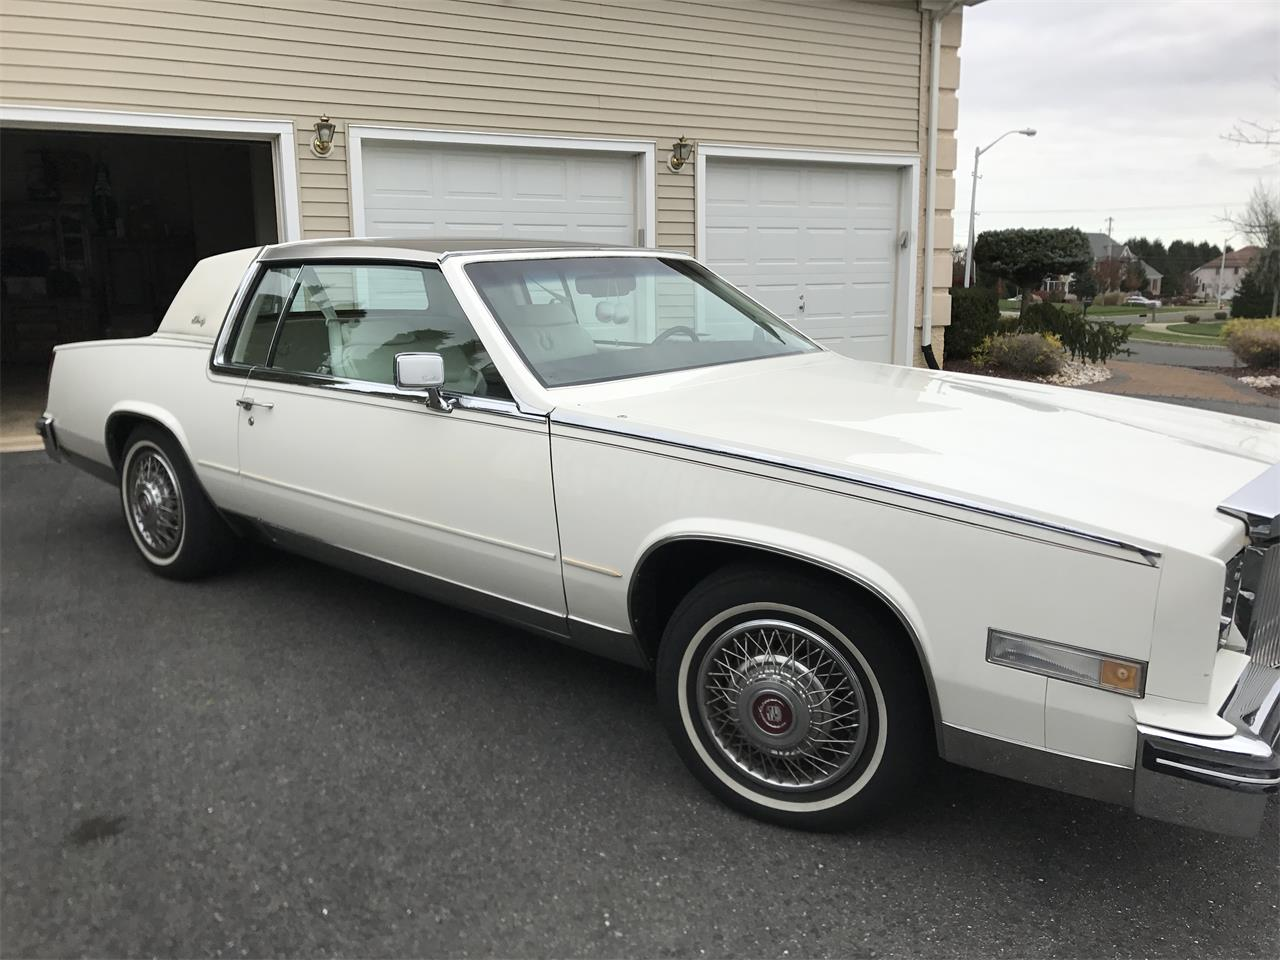 Large Picture of 1985 Cadillac Eldorado Biarritz located in Freehold New Jersey Offered by a Private Seller - LHUW